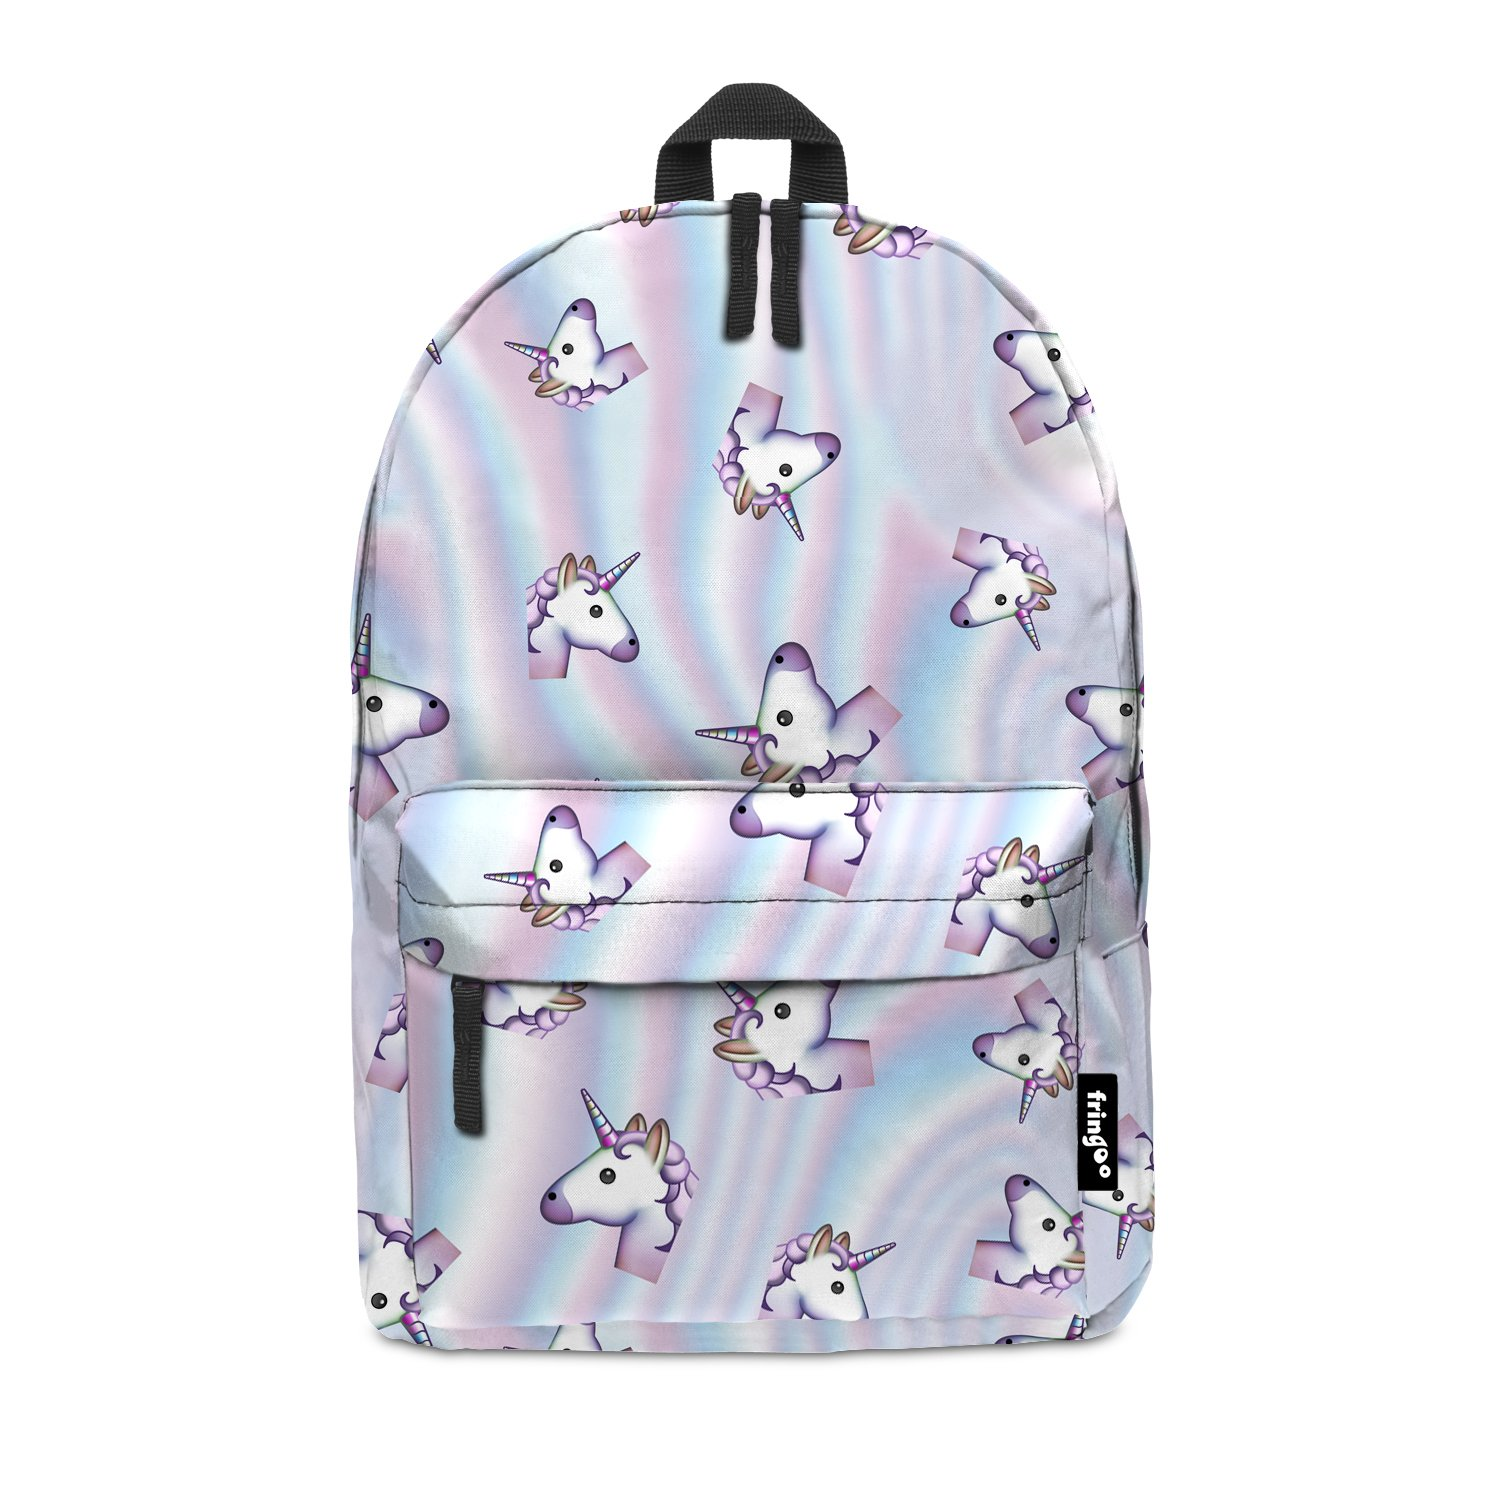 bb1290676c1 Fringoo® HOLO UNICORN Girls Boys Kids Backpack School Bag Rucksack Daypack  Travel Hand Luggage Emoji Hologram Bag (HOLO UNICORN)